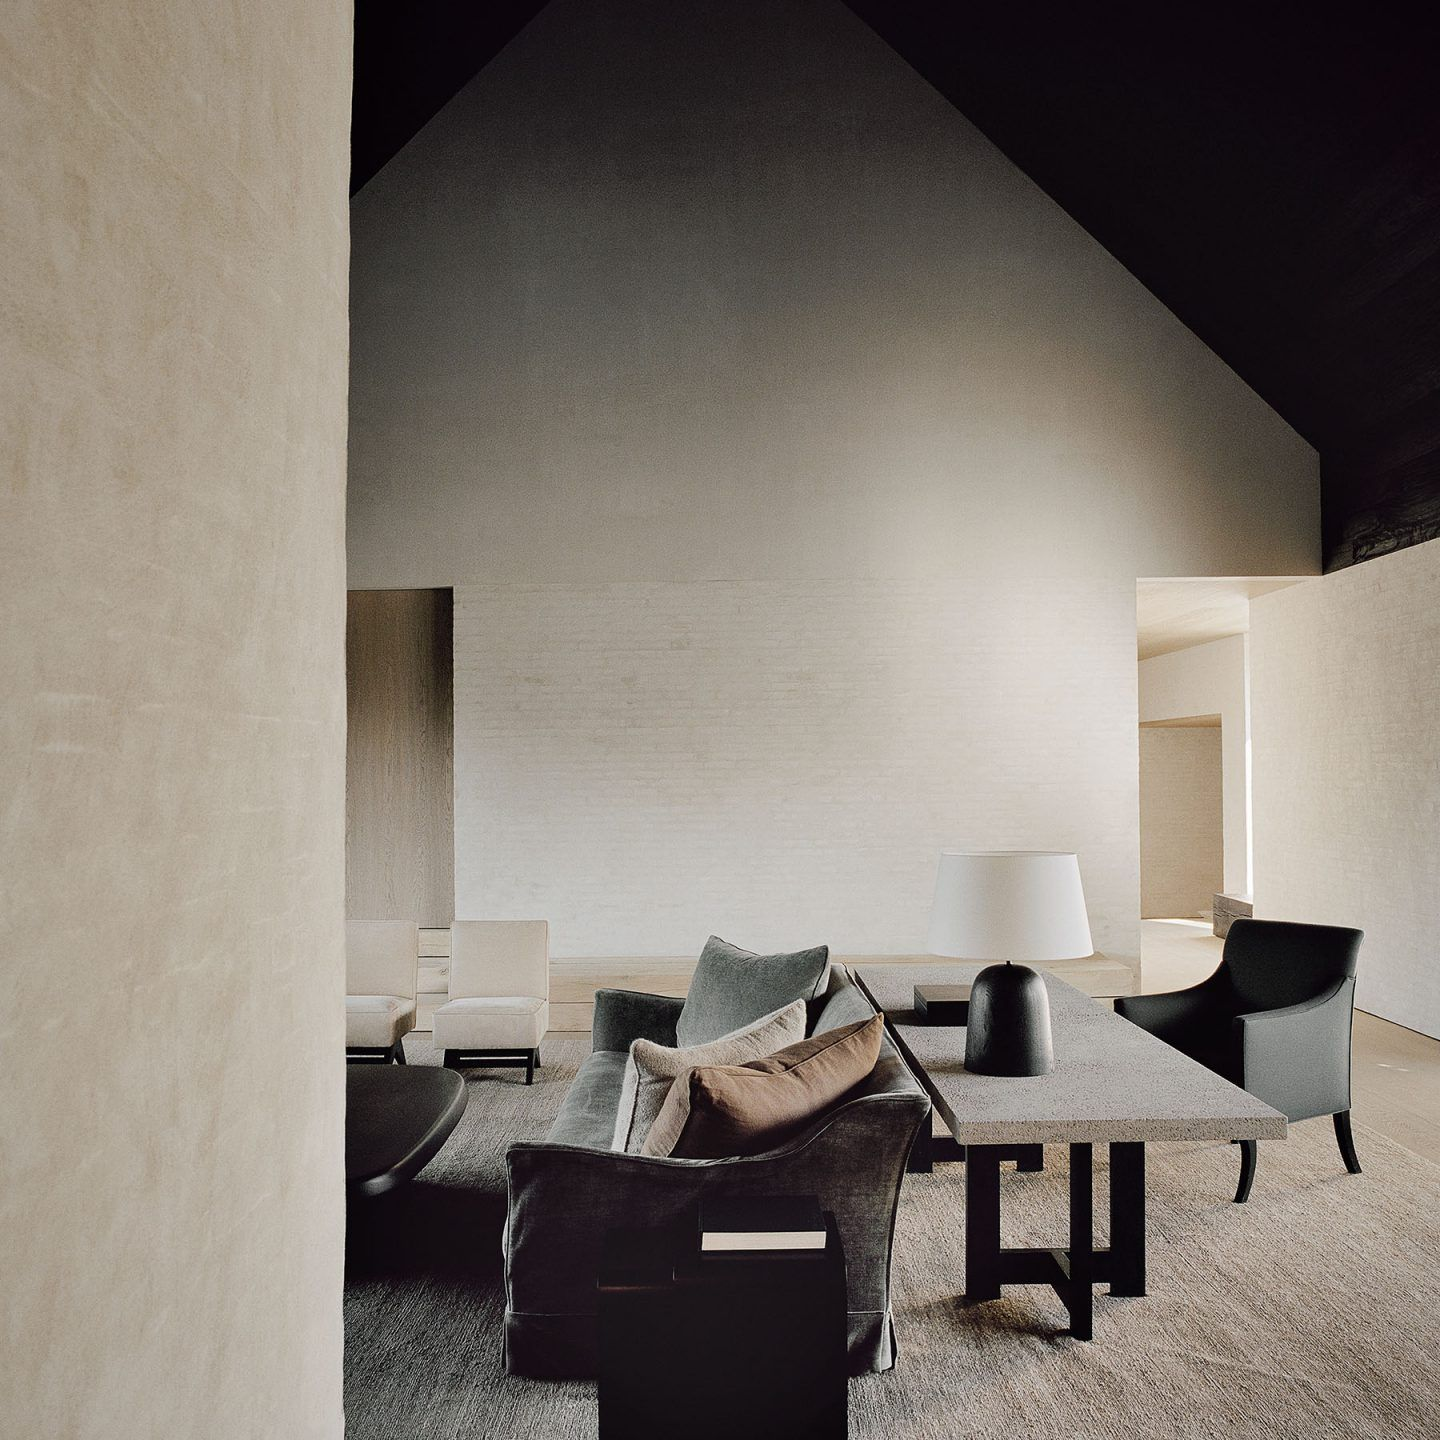 IGNANT-Architecture-Vincent-Van-Duysen-VO-Residence-05